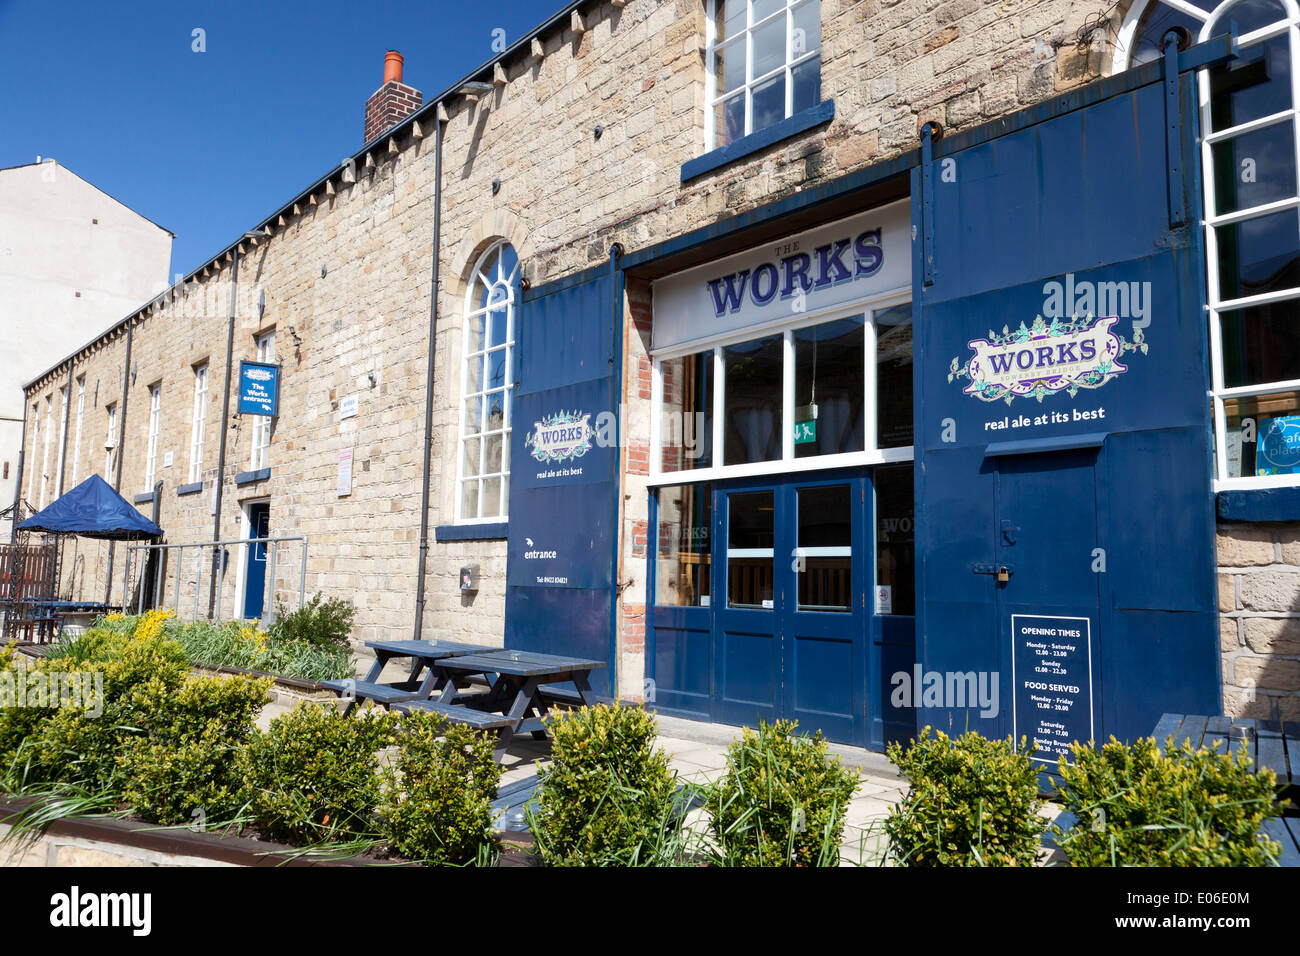 Former industrial building converted into The Works pub, Sowerby Bridge, West Yorkshire - Stock Image